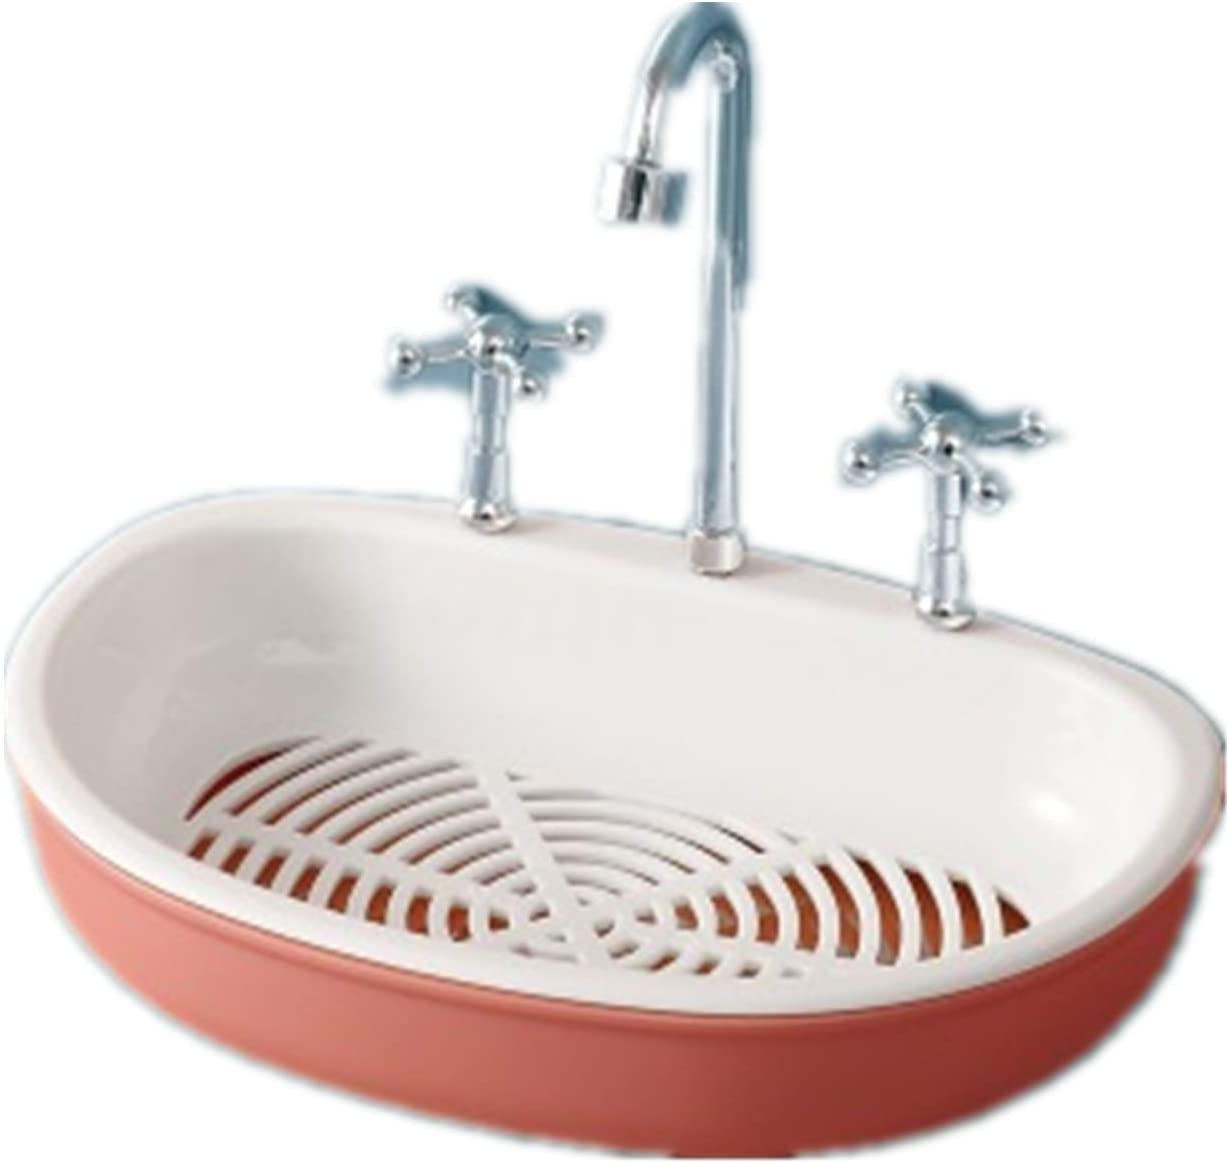 Amazon Com Xbs Soap Box Holder For Shower Bathroom Decoration Tub And Kitchen Sink Drill Free Removable With Draining Tray Very Functional Adorable Faucet Soap Dish Pink Home Kitchen